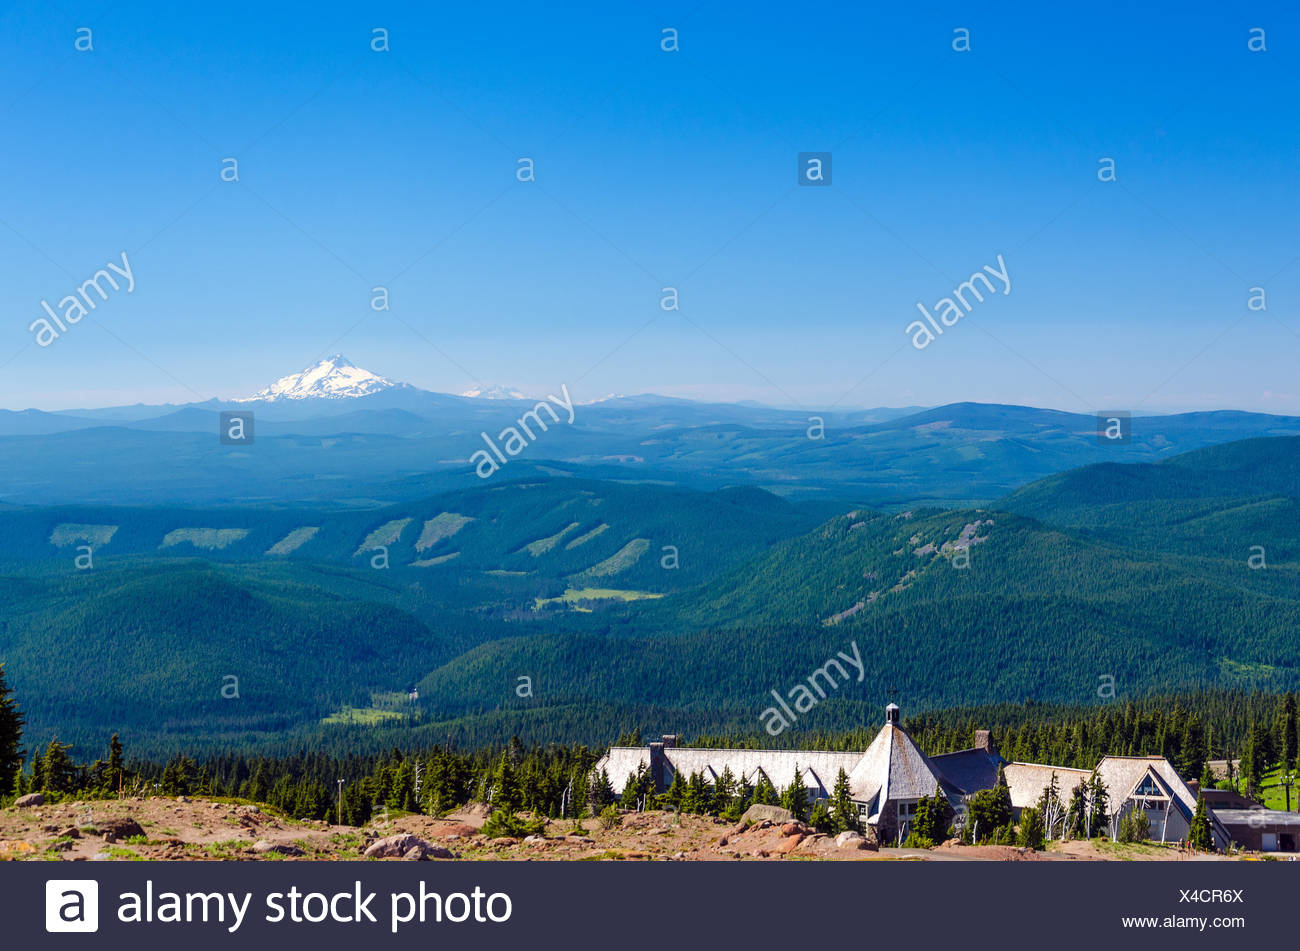 blue tree trees hill pine snow coke cocaine material drug anaesthetic addictive drug summit summer summerly tip peak evergreen - Stock Image